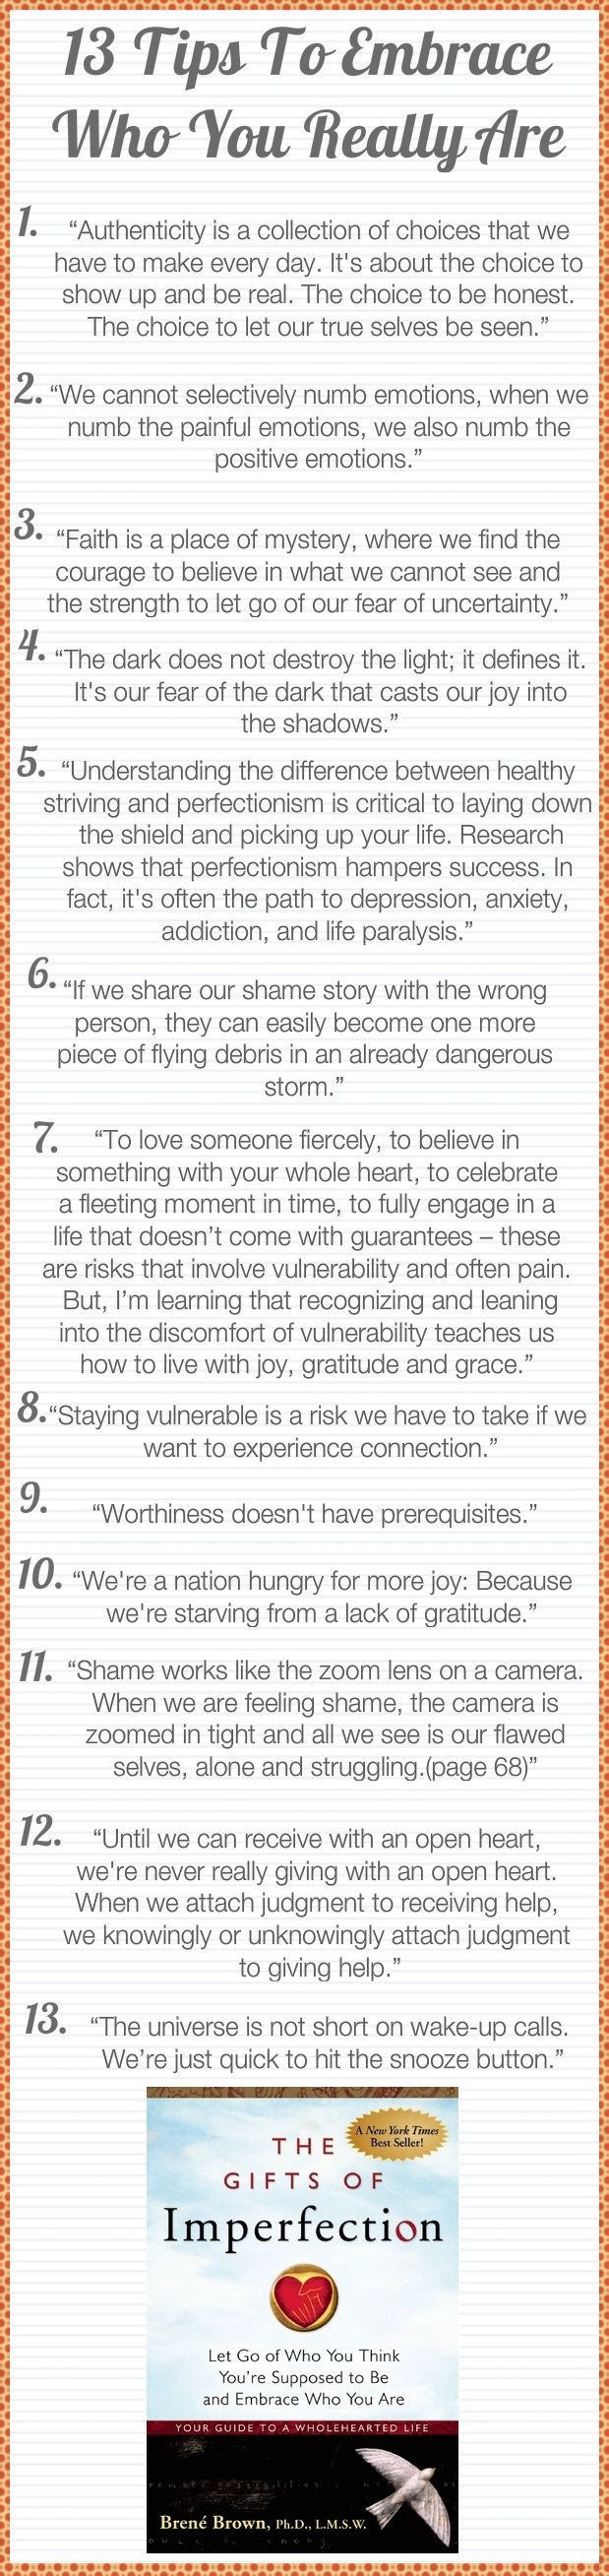 13 tips to embrace who you really are. This is really meaningful to me tonight in particular. Thanks for sharing this.